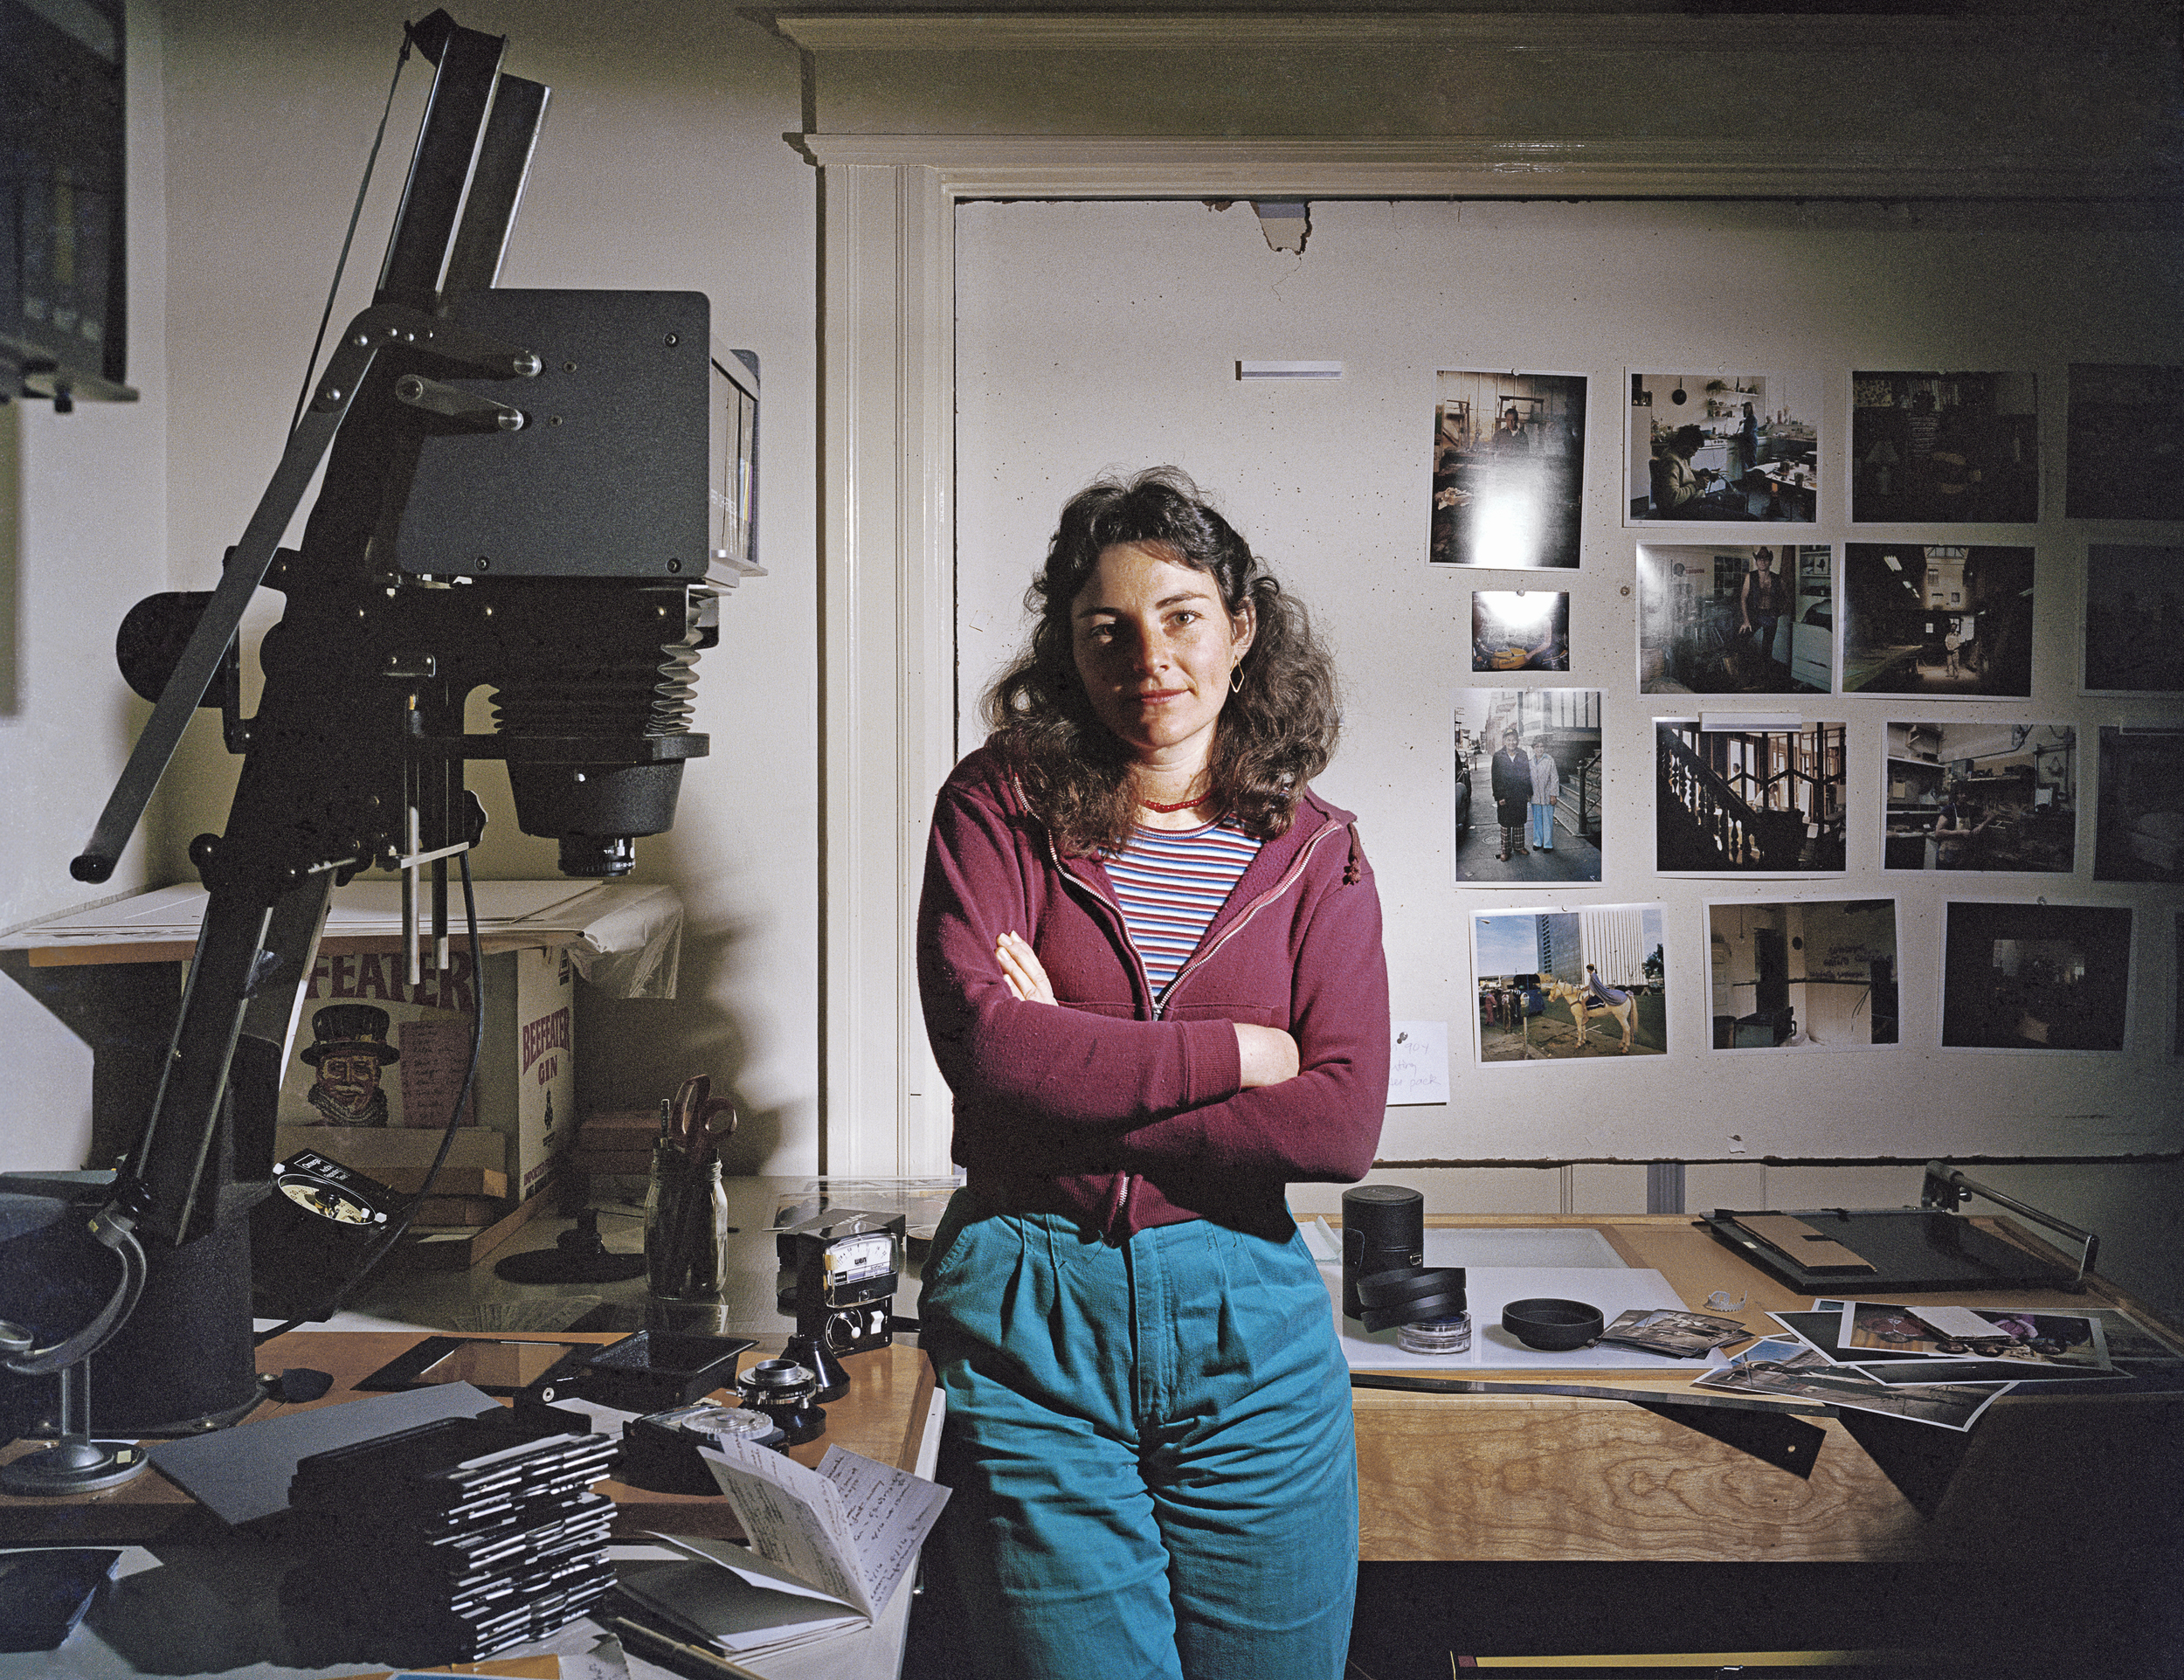 Janet Delaney in her darkroom at 62 Langton Street, 1981 Archival Pigment Print, 2016 16 x 20 inches, edition of 5 20 x 24 inches, edition of 2 30 x 40 inches, edition of 2